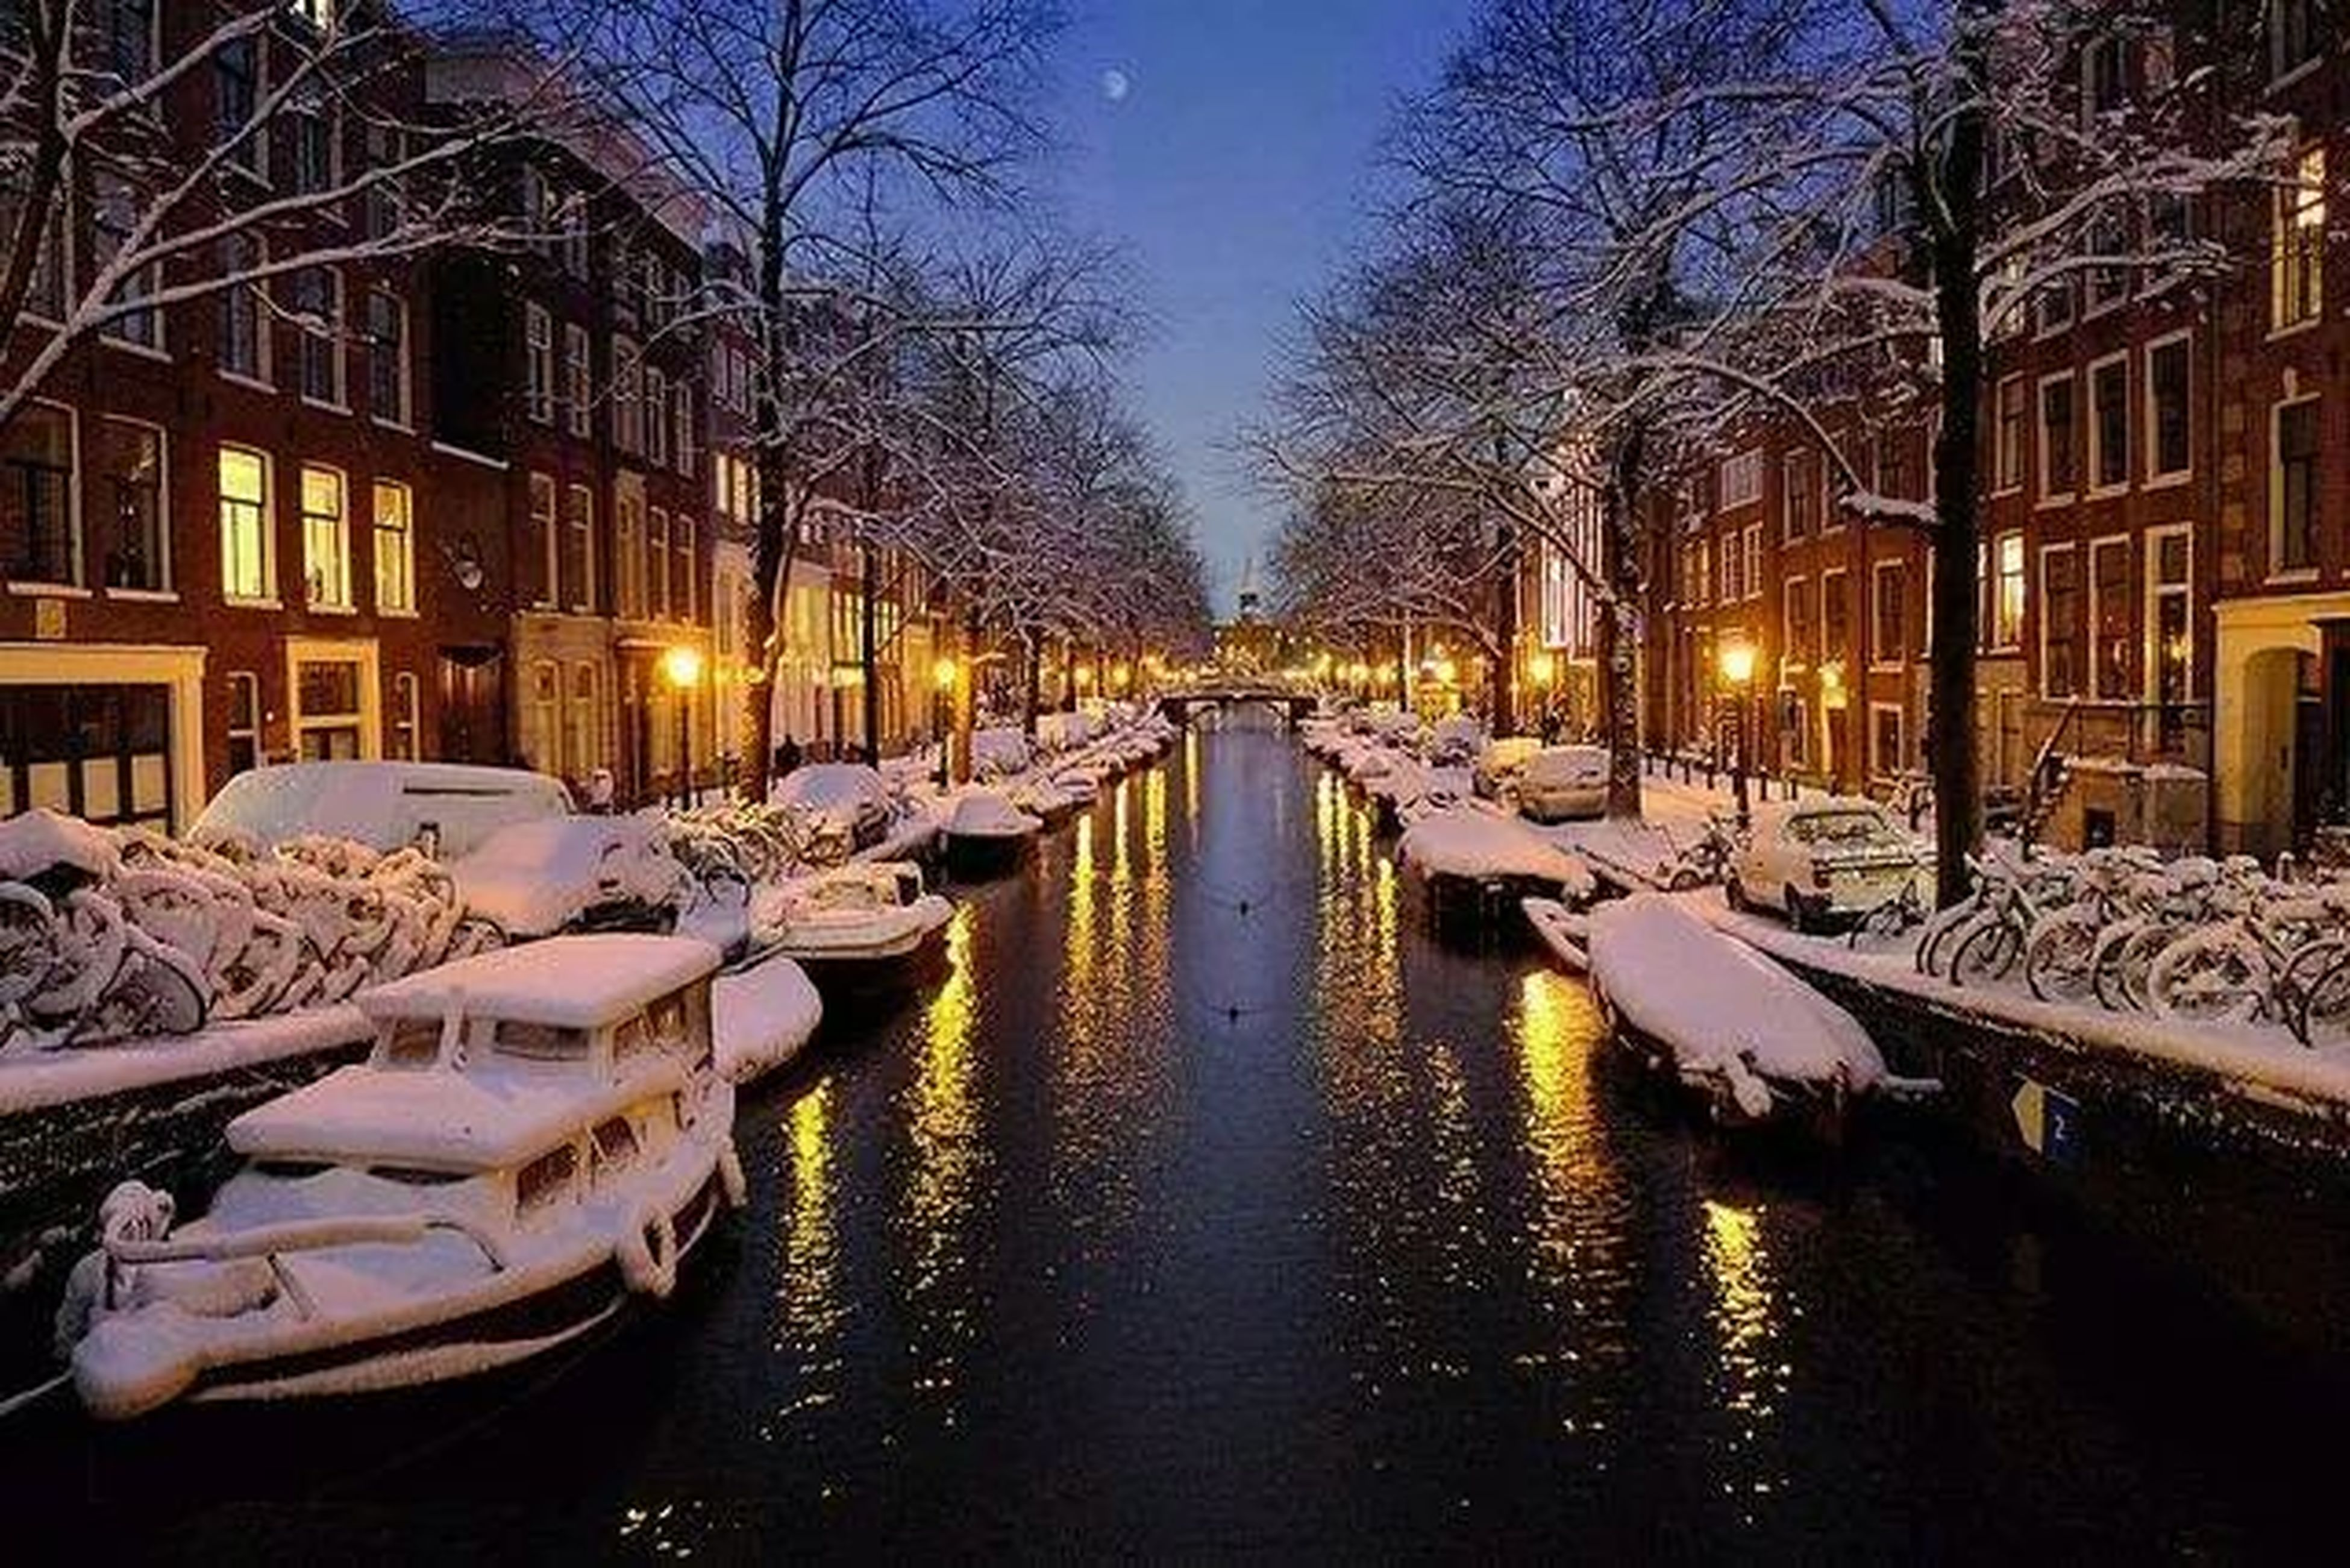 building exterior, built structure, architecture, canal, transportation, water, winter, bare tree, cold temperature, snow, city, mode of transport, illuminated, season, reflection, tree, street light, waterfront, moored, residential building